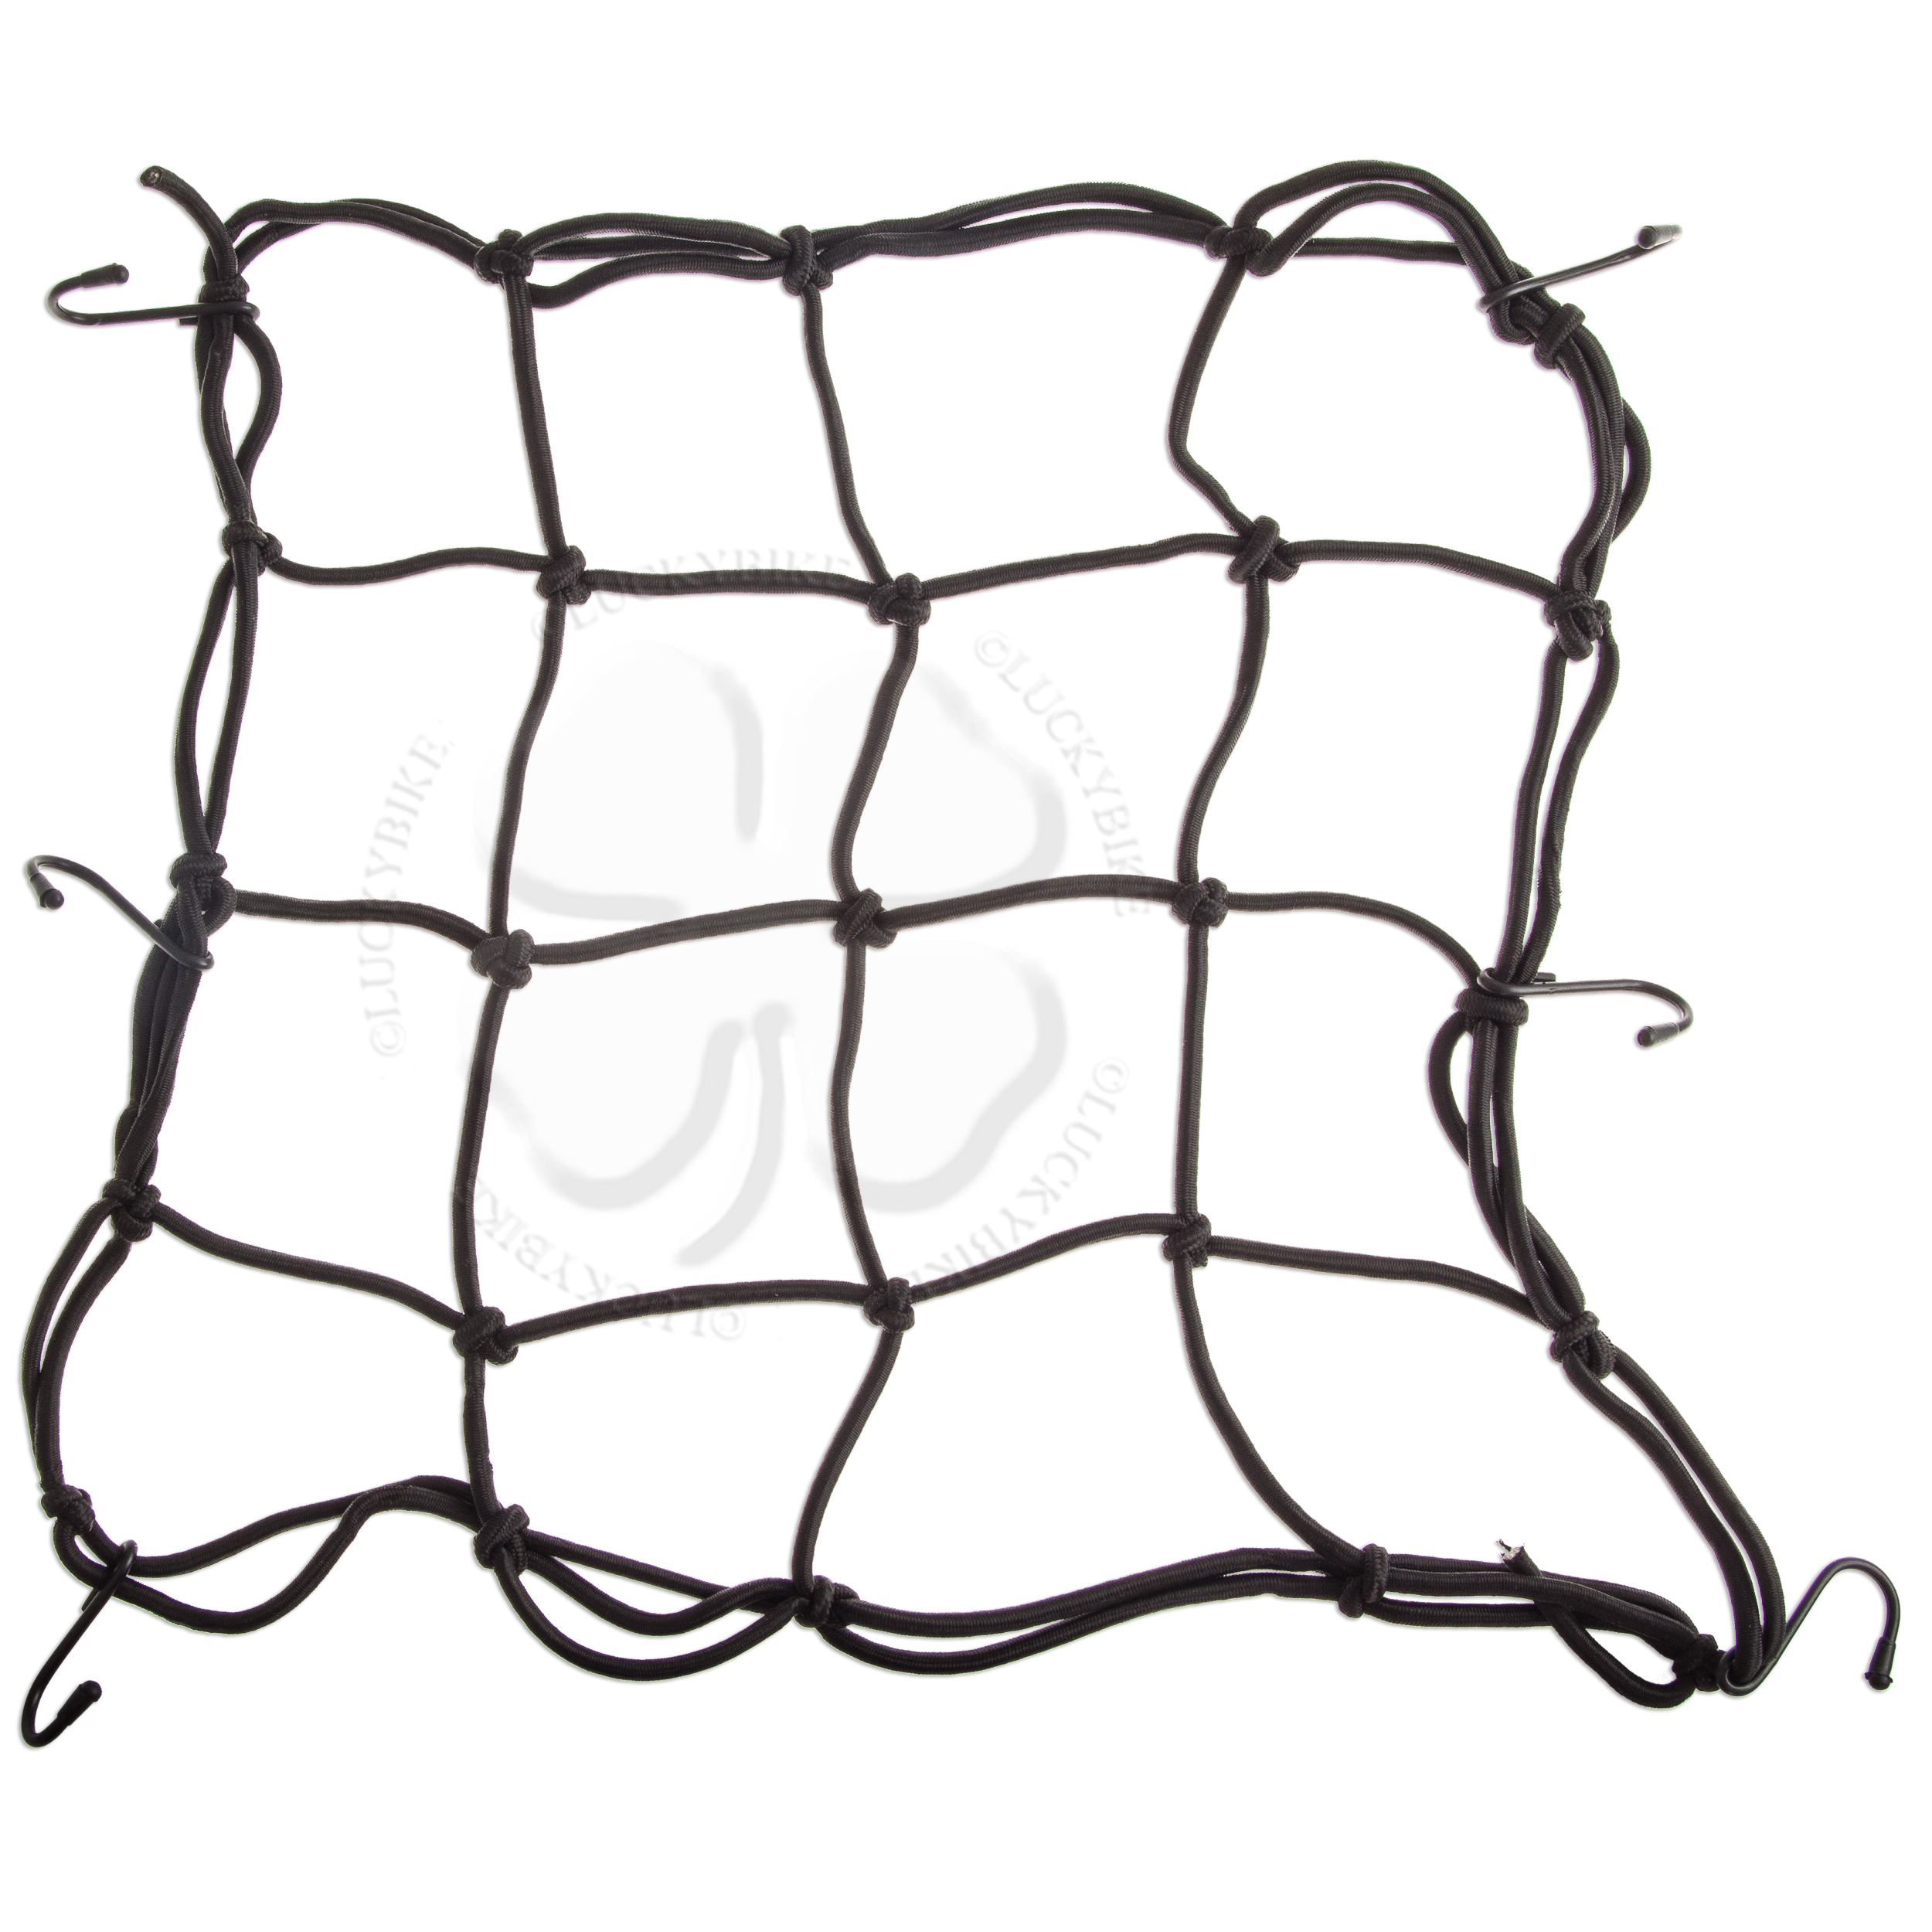 SMALL MOTORCYCLE CARGO HOLD DOWN HOLDING NET NETTING SET ATV BUNGEE BUNGIE CORD